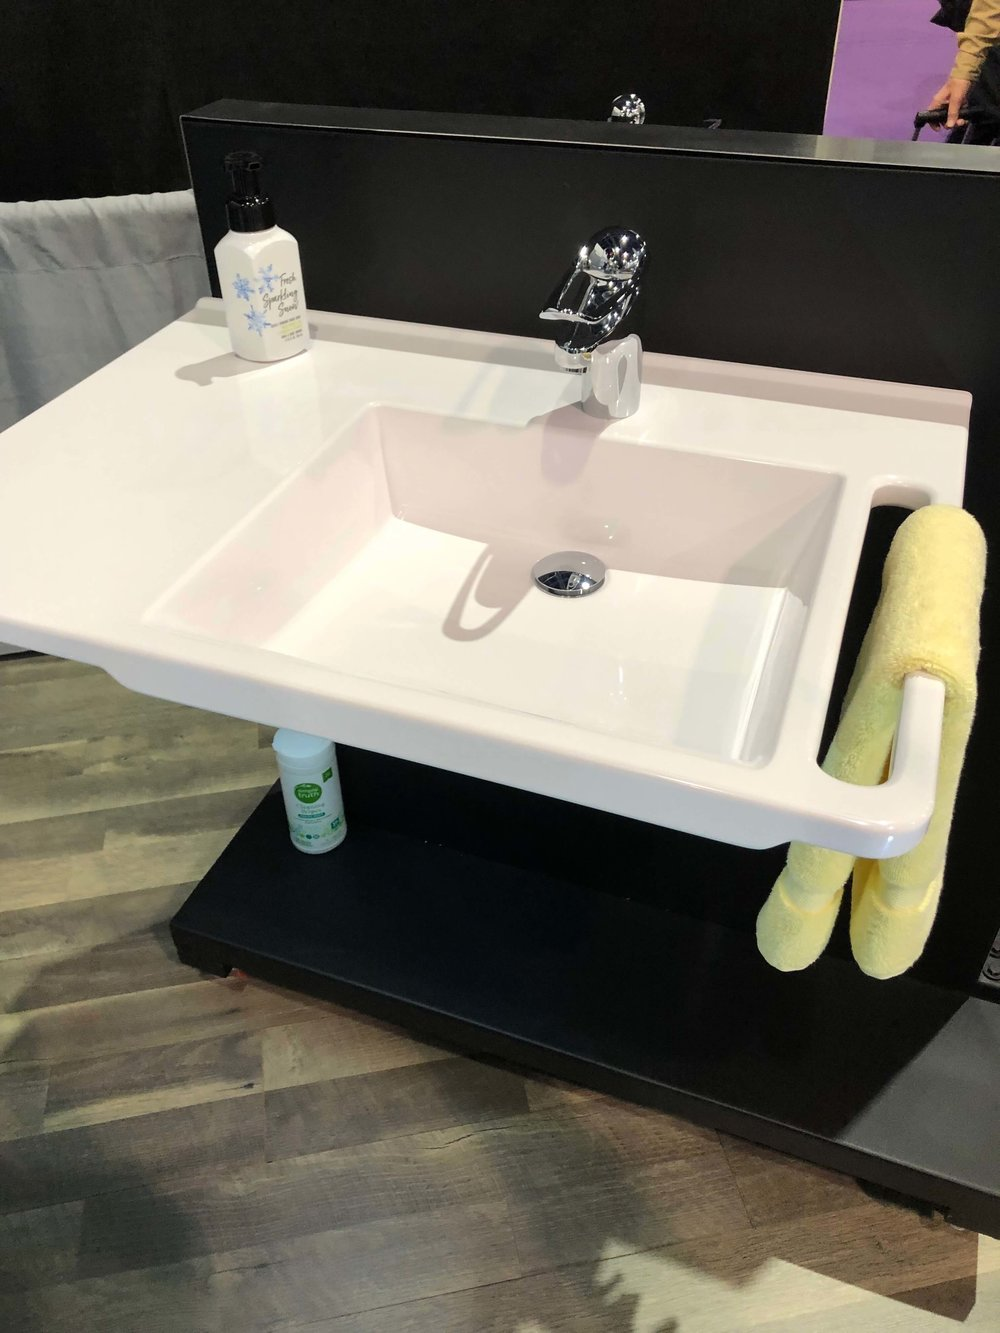 Accessible Design Products Found At KBIS 2019 - Safety Sinks | Universal Design, Barrier Free Design, Aging-in-Place #universaldesign #aginginplace #grabbars